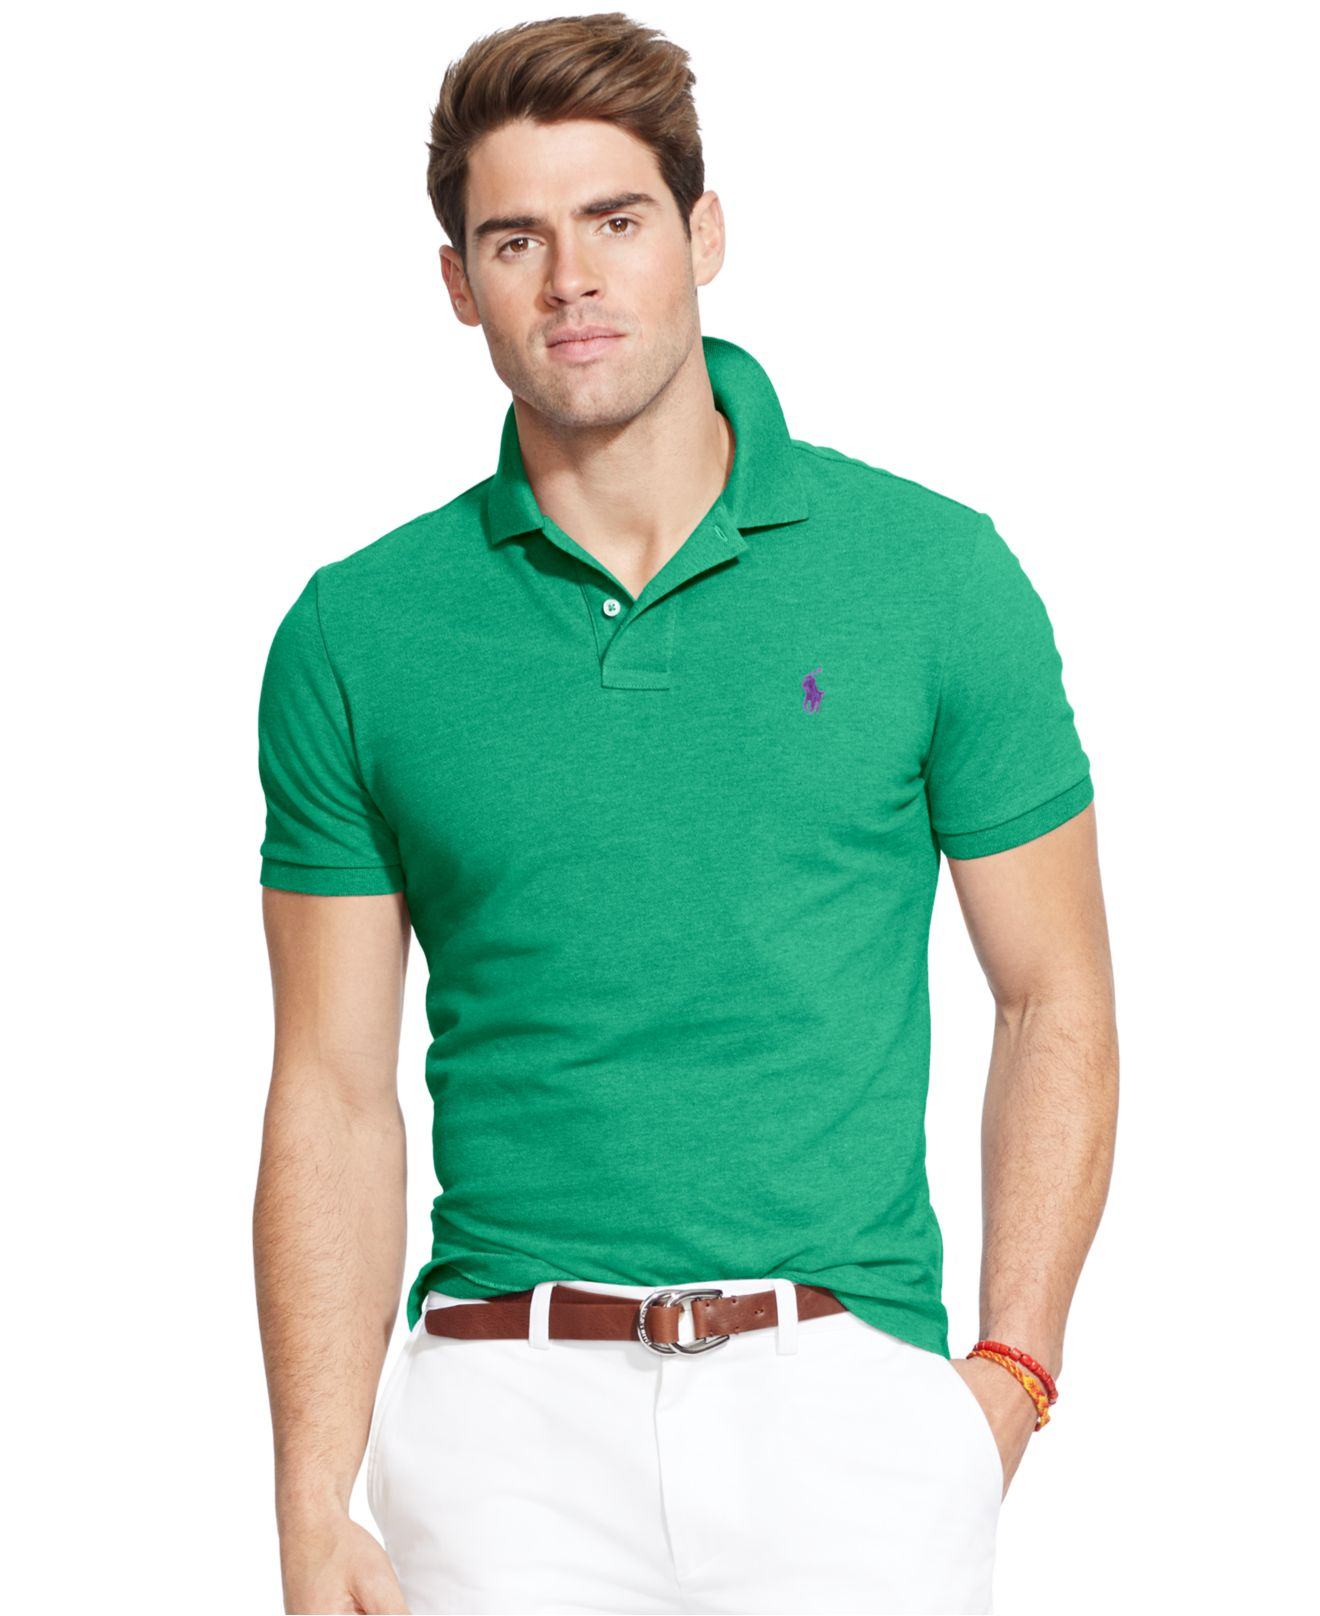 541a0f308aa3b ... top quality lyst polo ralph lauren custom fit mesh polo shirt in green  for men 8012f